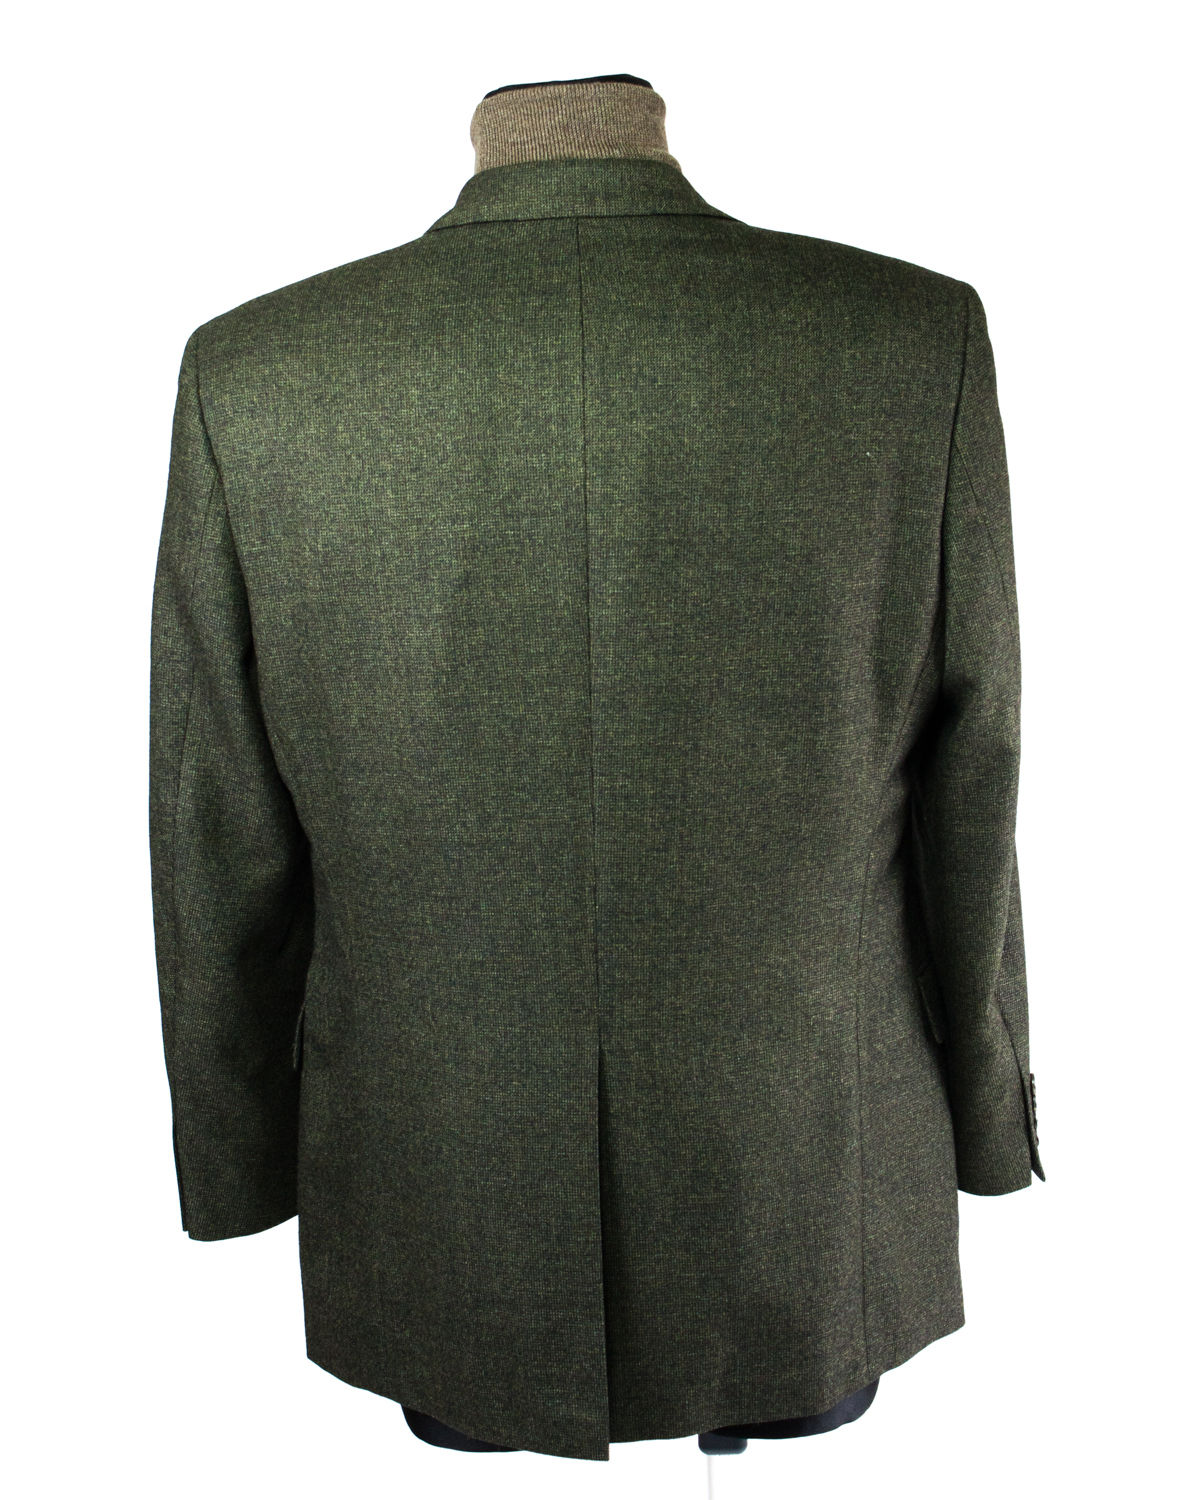 HUGO BOSS x LORO PIANA Merino Wool Blazer US 38, EU 48 - secondfirst